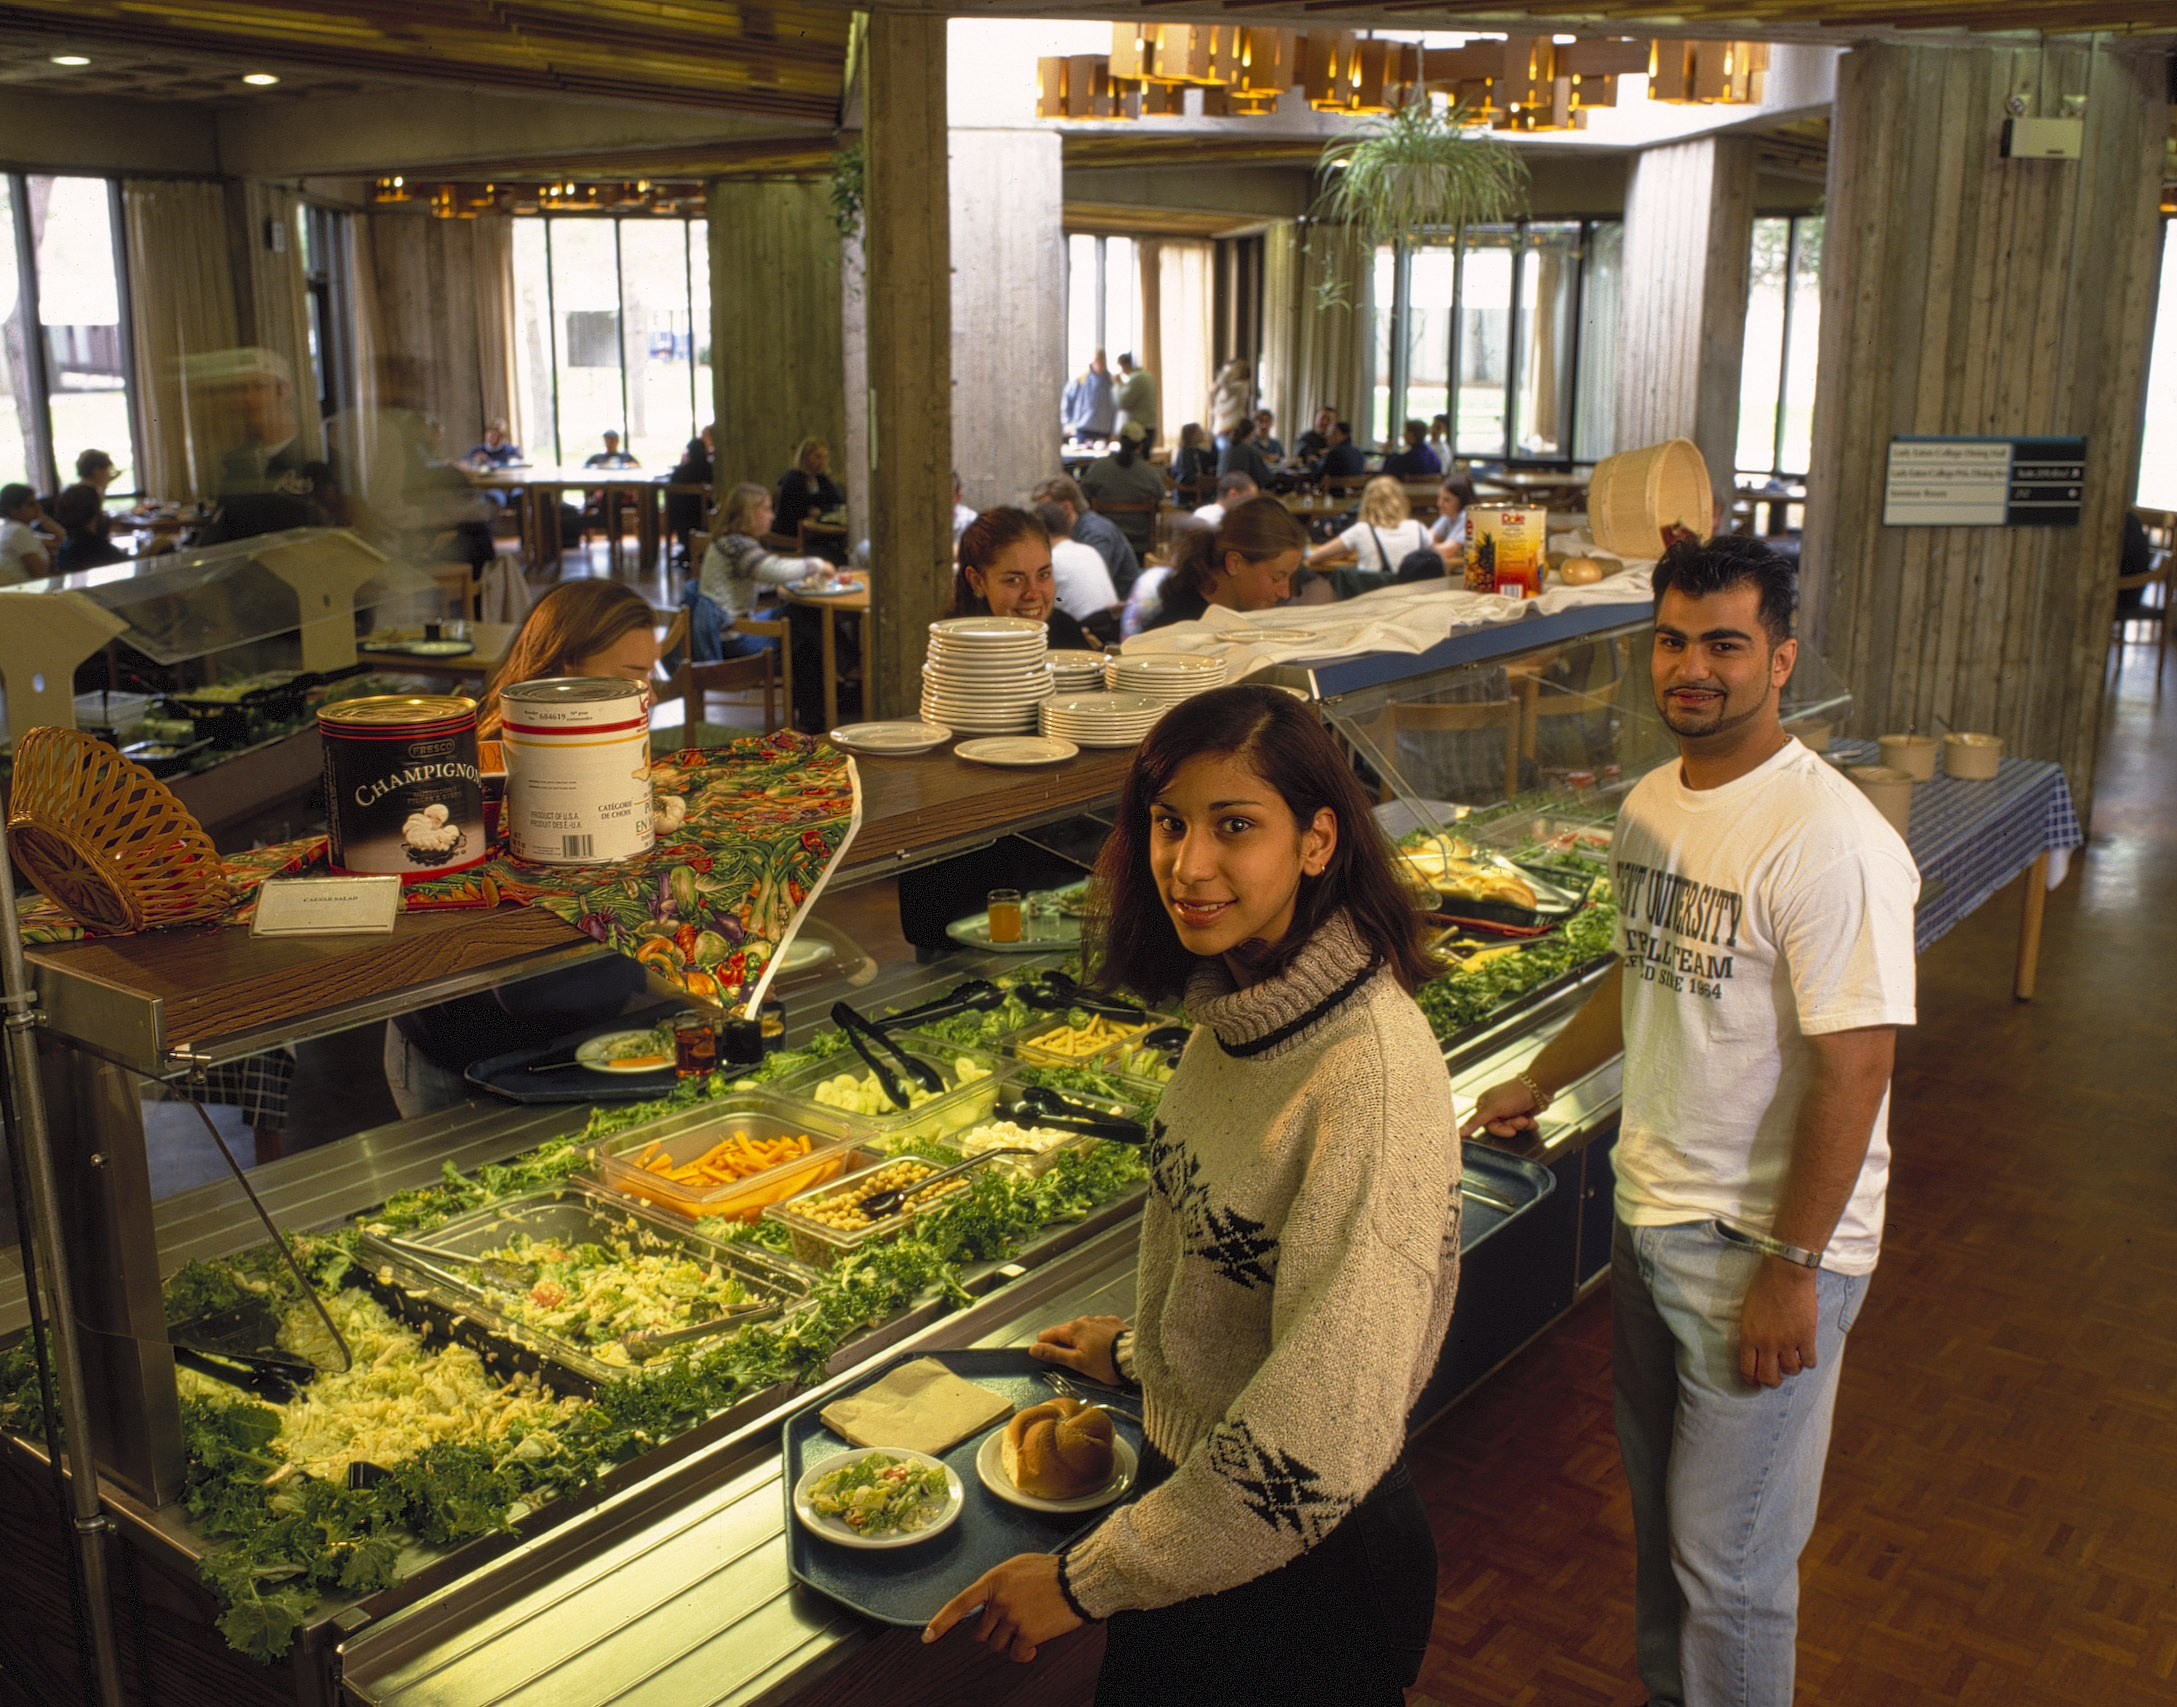 Buffet service at Lady Eaton College Dining Hall